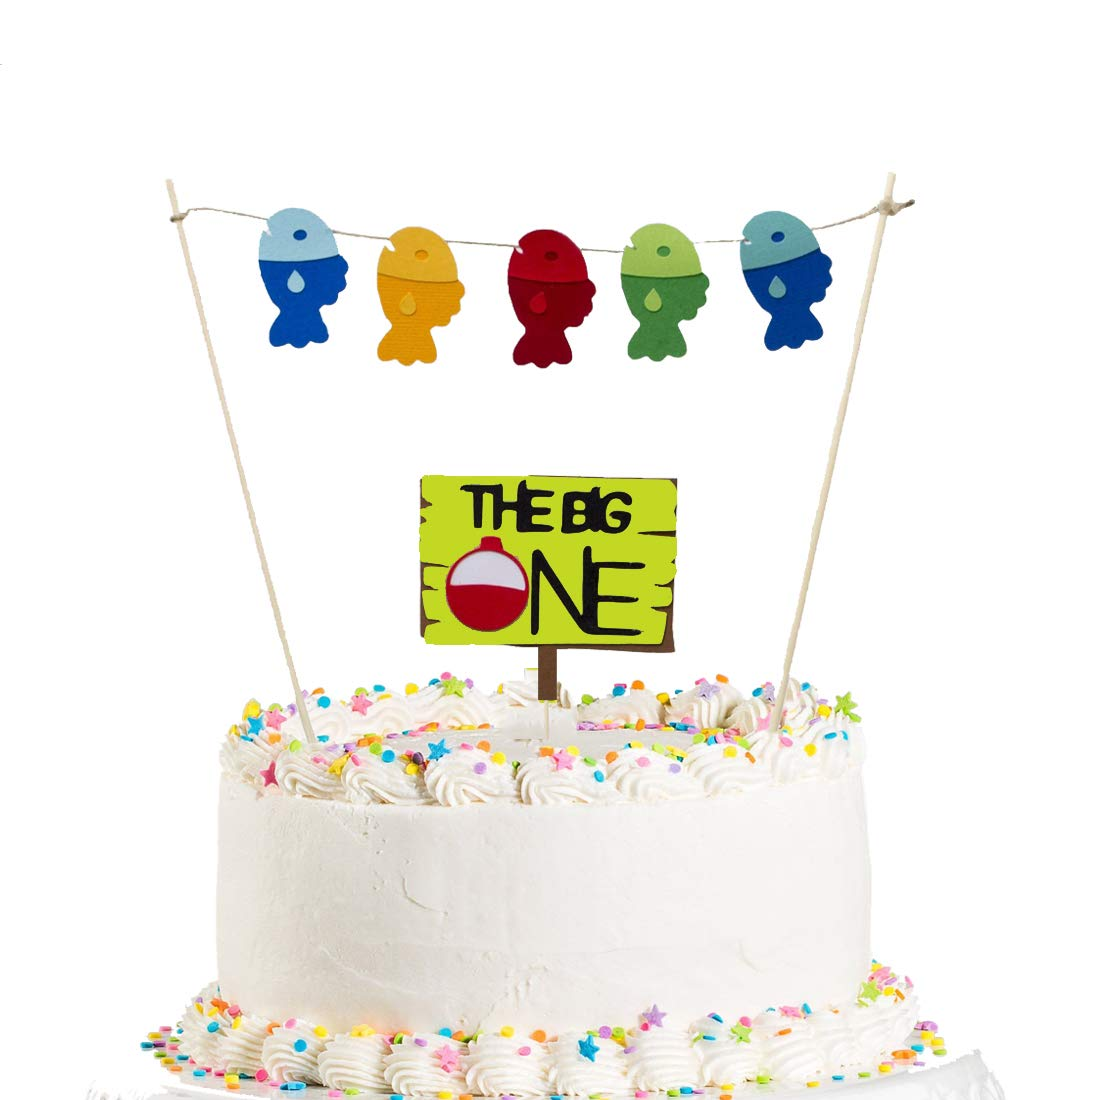 Enjoyable The Big One Cake Topper Ofishally One The Big One Birthday Funny Birthday Cards Online Elaedamsfinfo